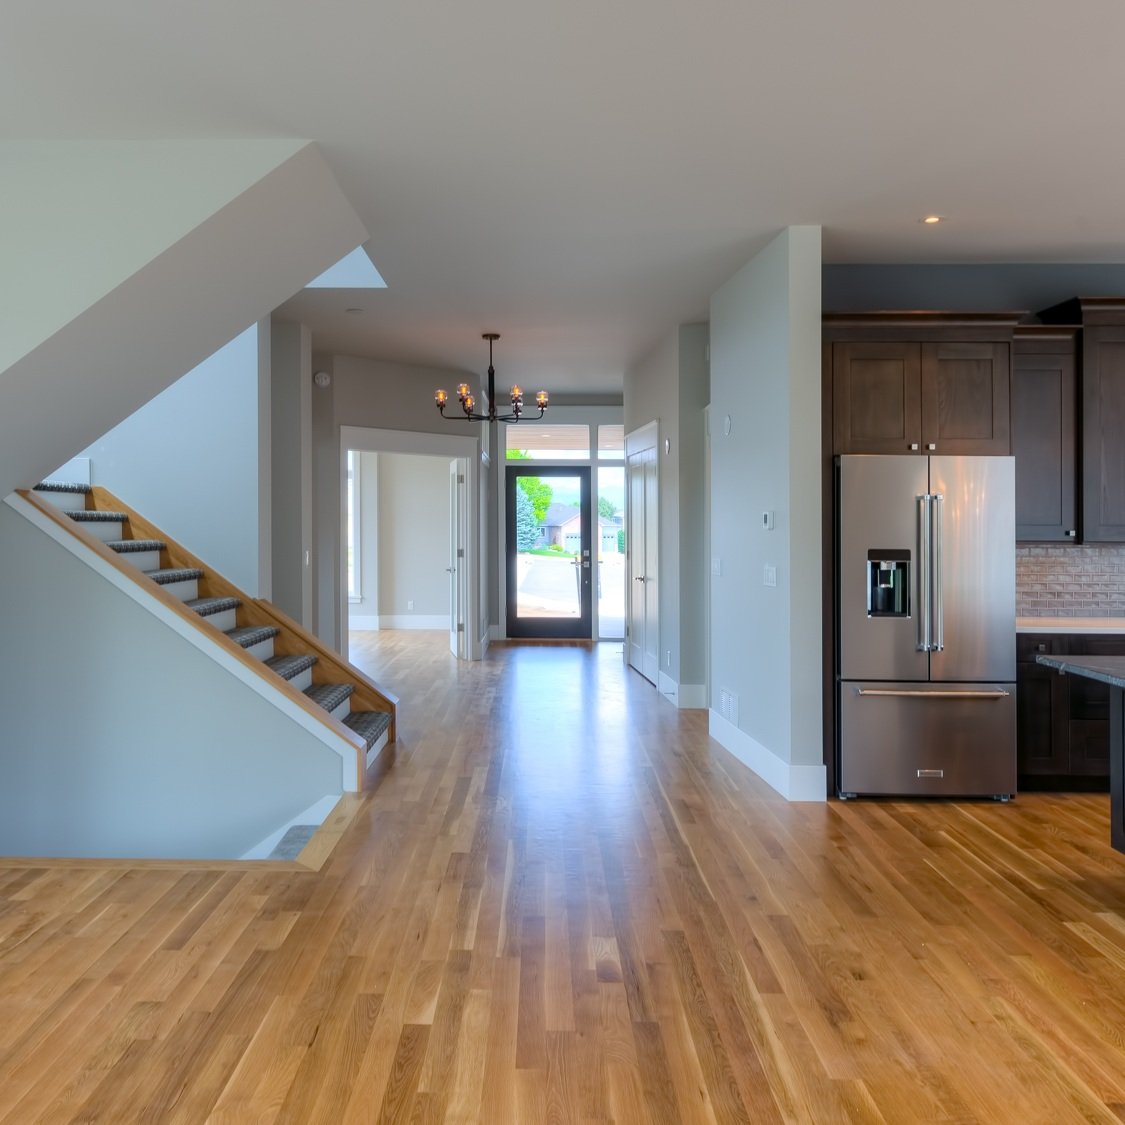 14-2324_Great_Room4_Kitchen3_and_Hallway_5TMDE_RVT2-NR_E_HiRes1MB_Web.jpg